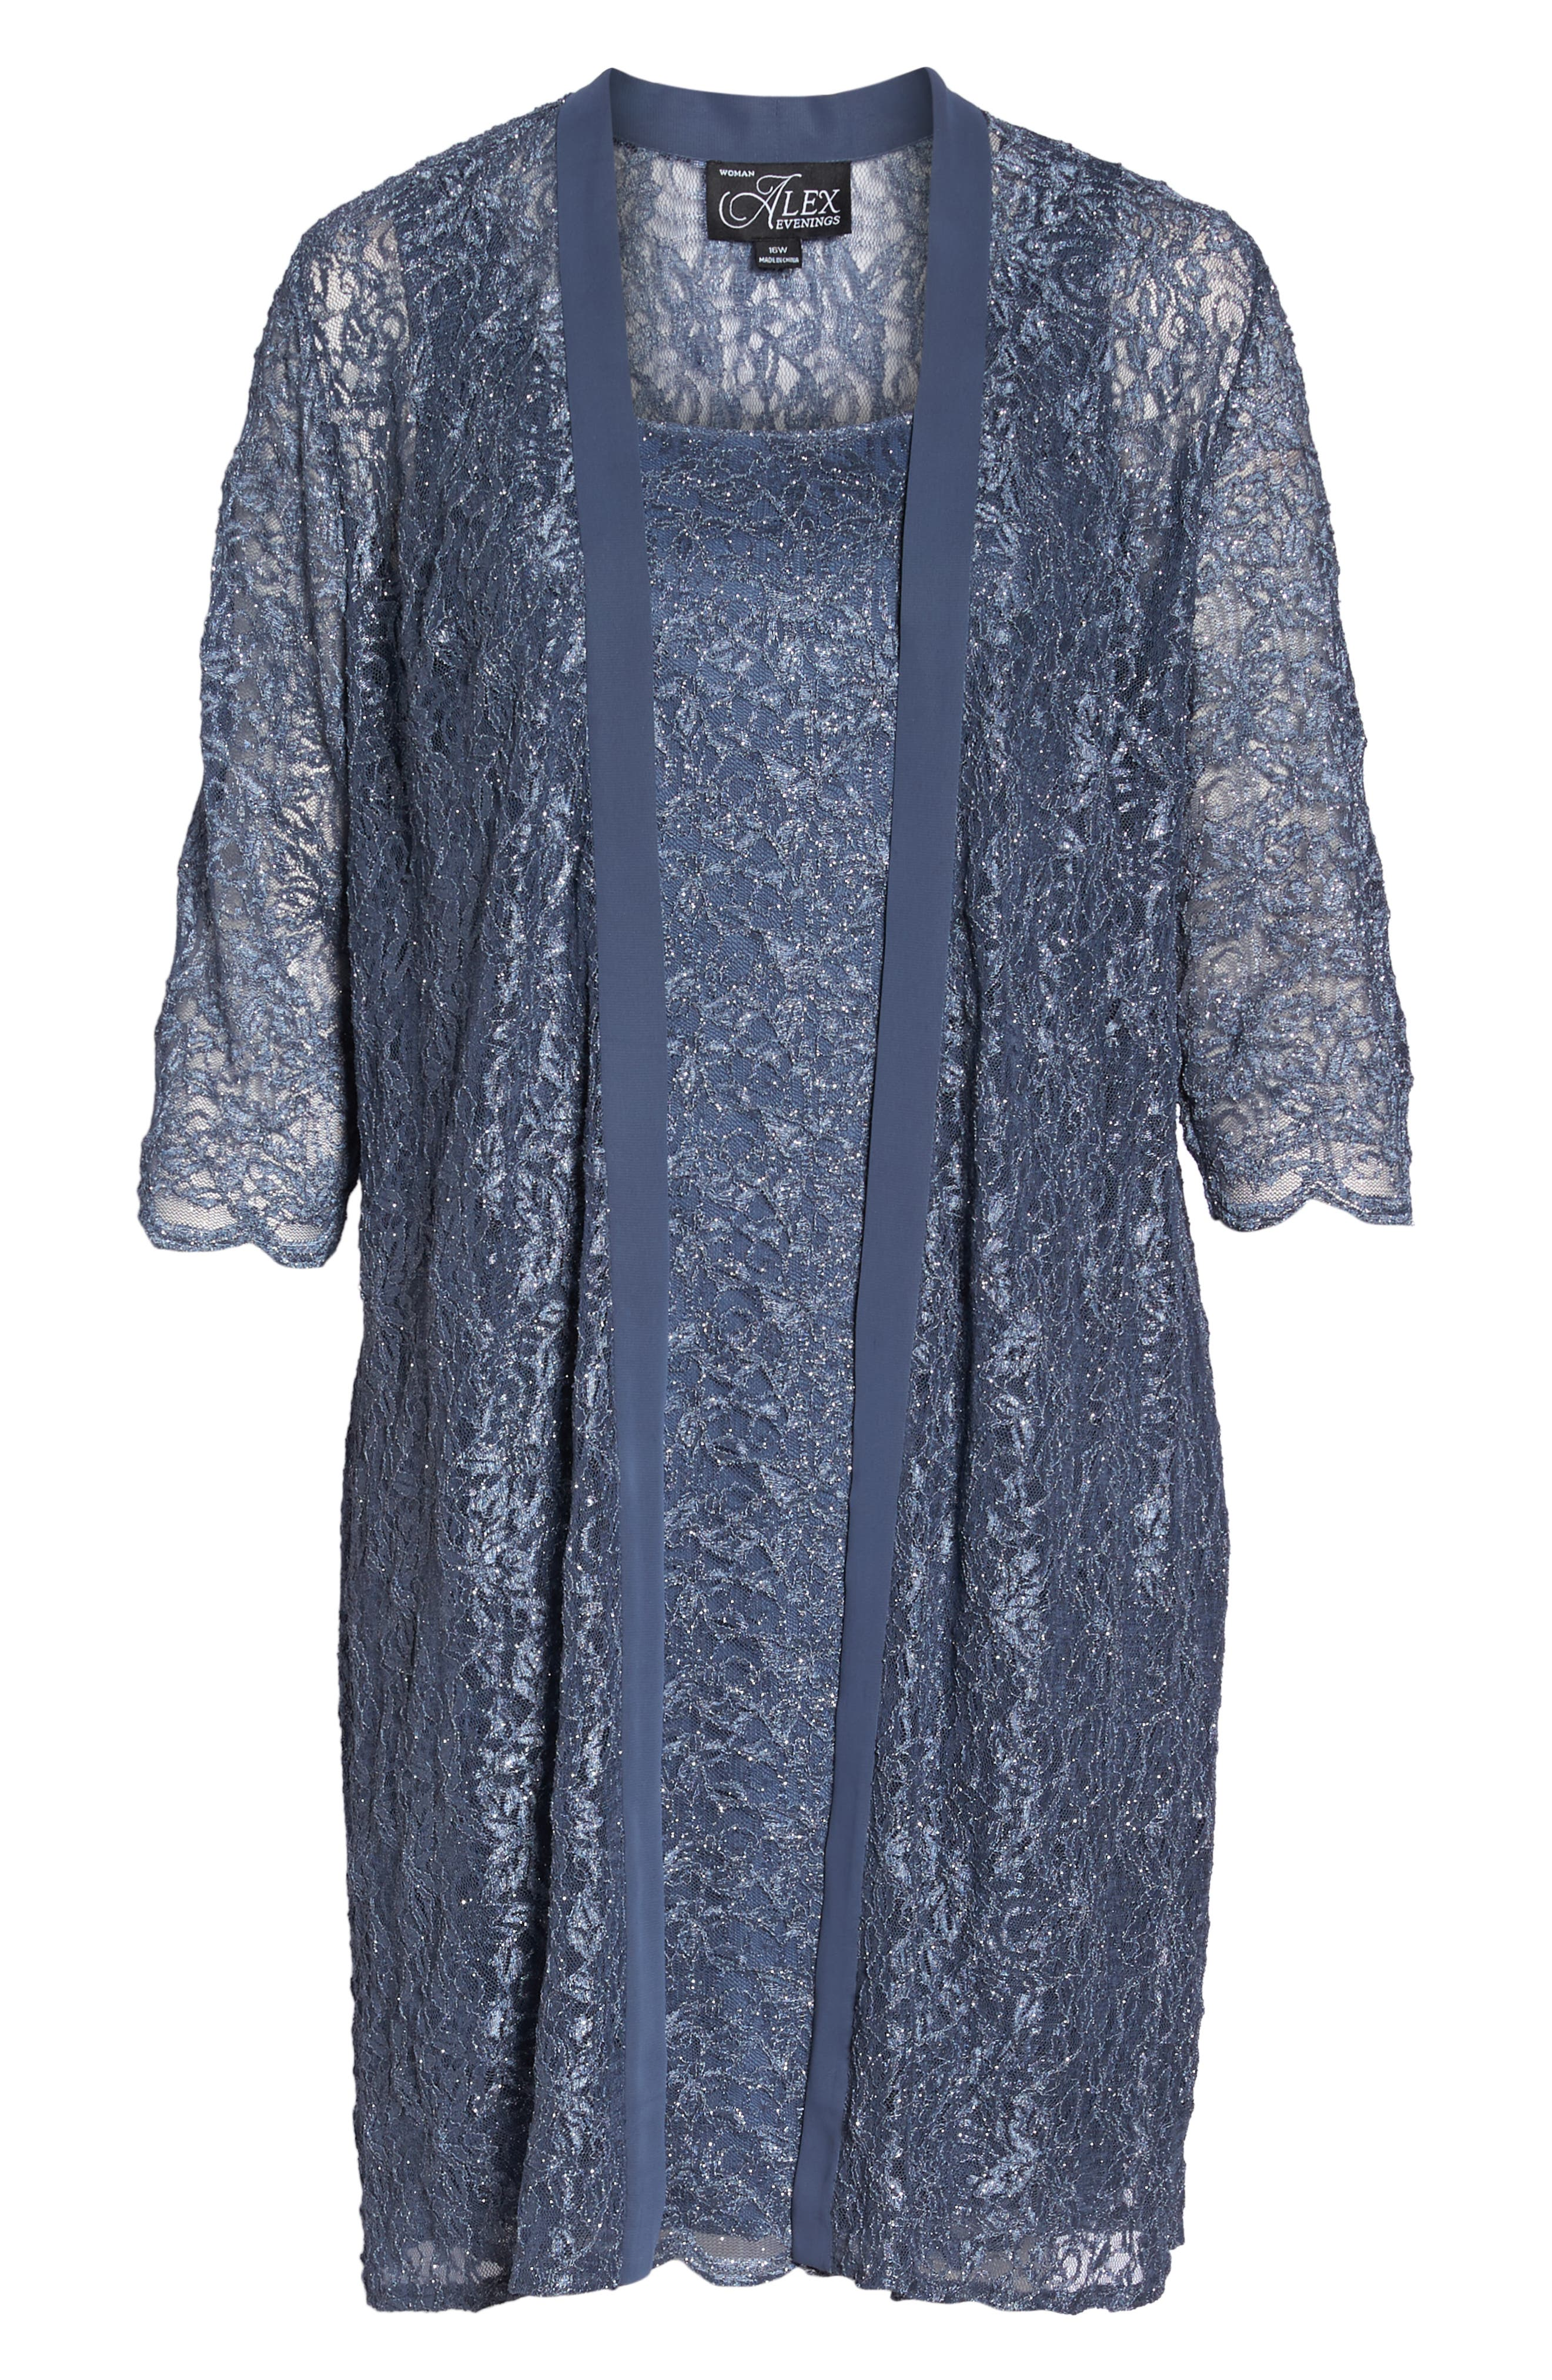 Lace Sheath Dress with Jacket,                             Alternate thumbnail 7, color,                             GREY